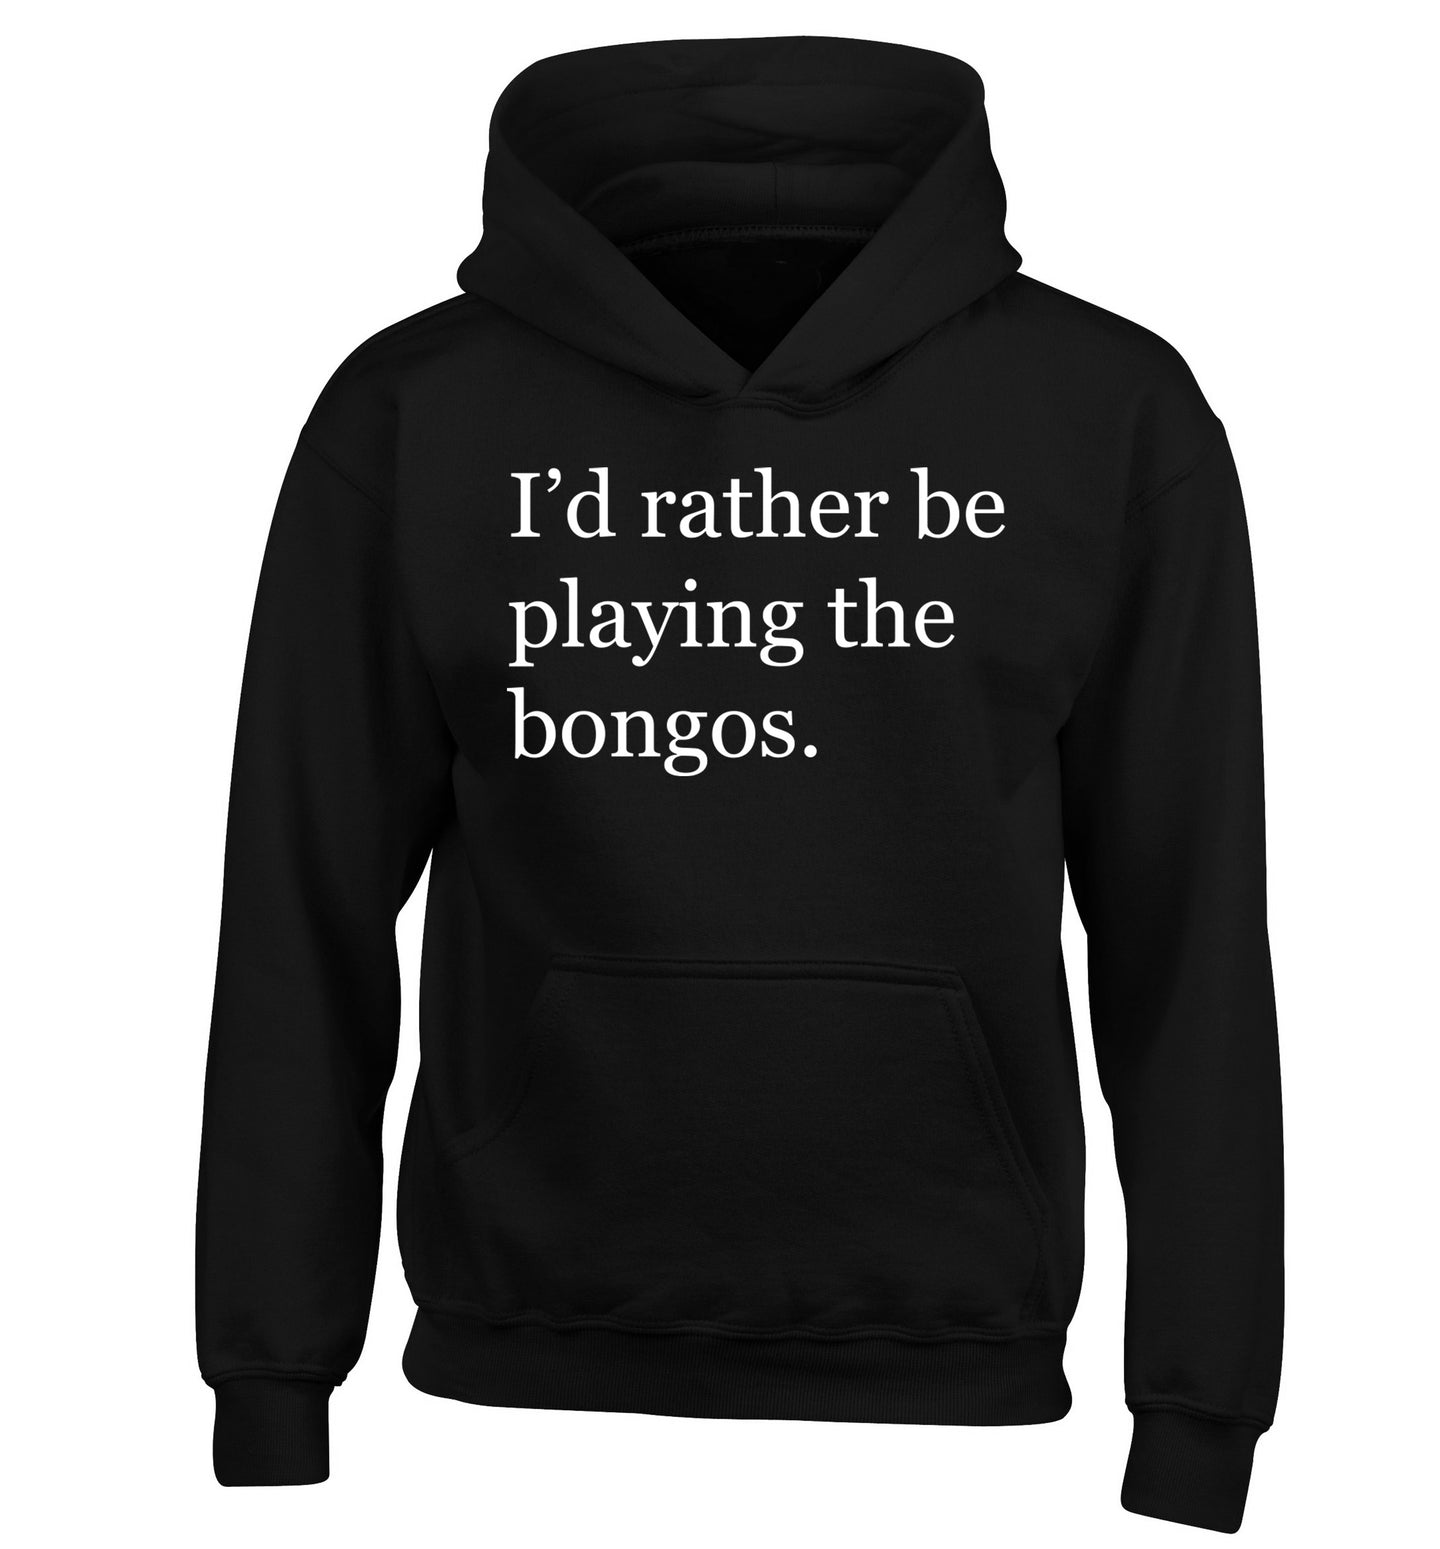 I'd rather be playing the bongos children's black hoodie 12-14 Years